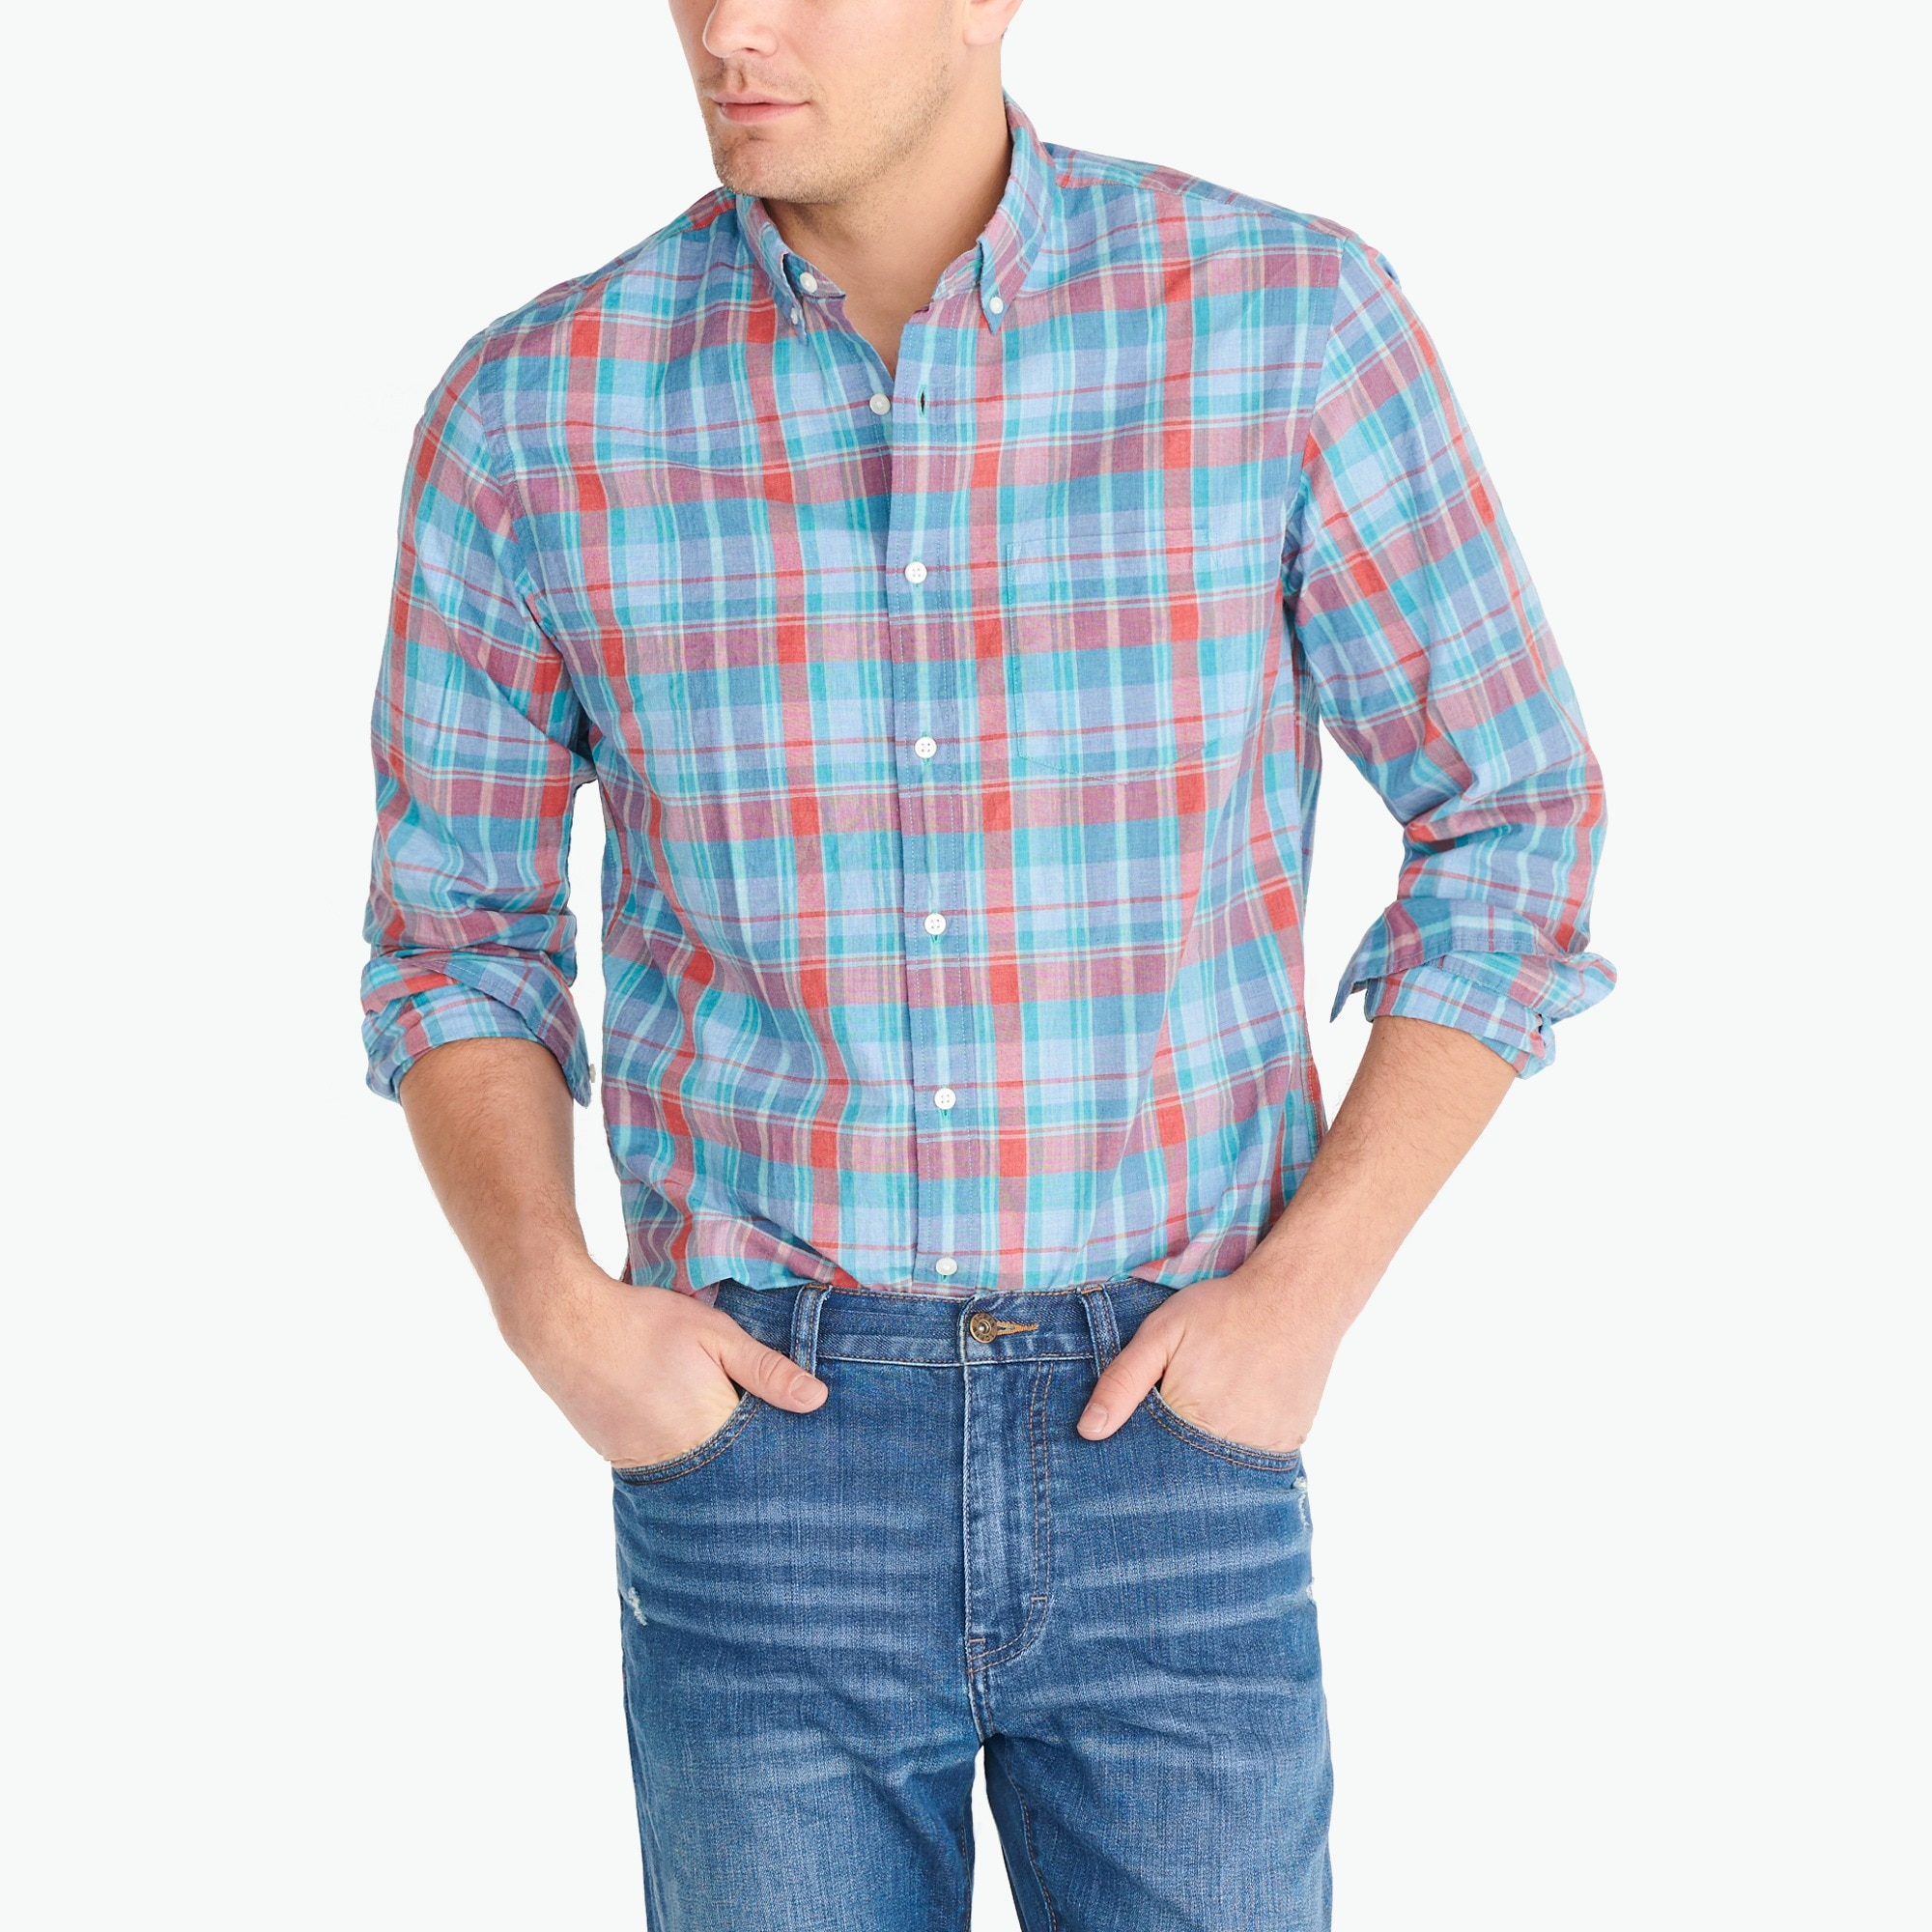 Image 1 for Heathered cotton plaid shirt